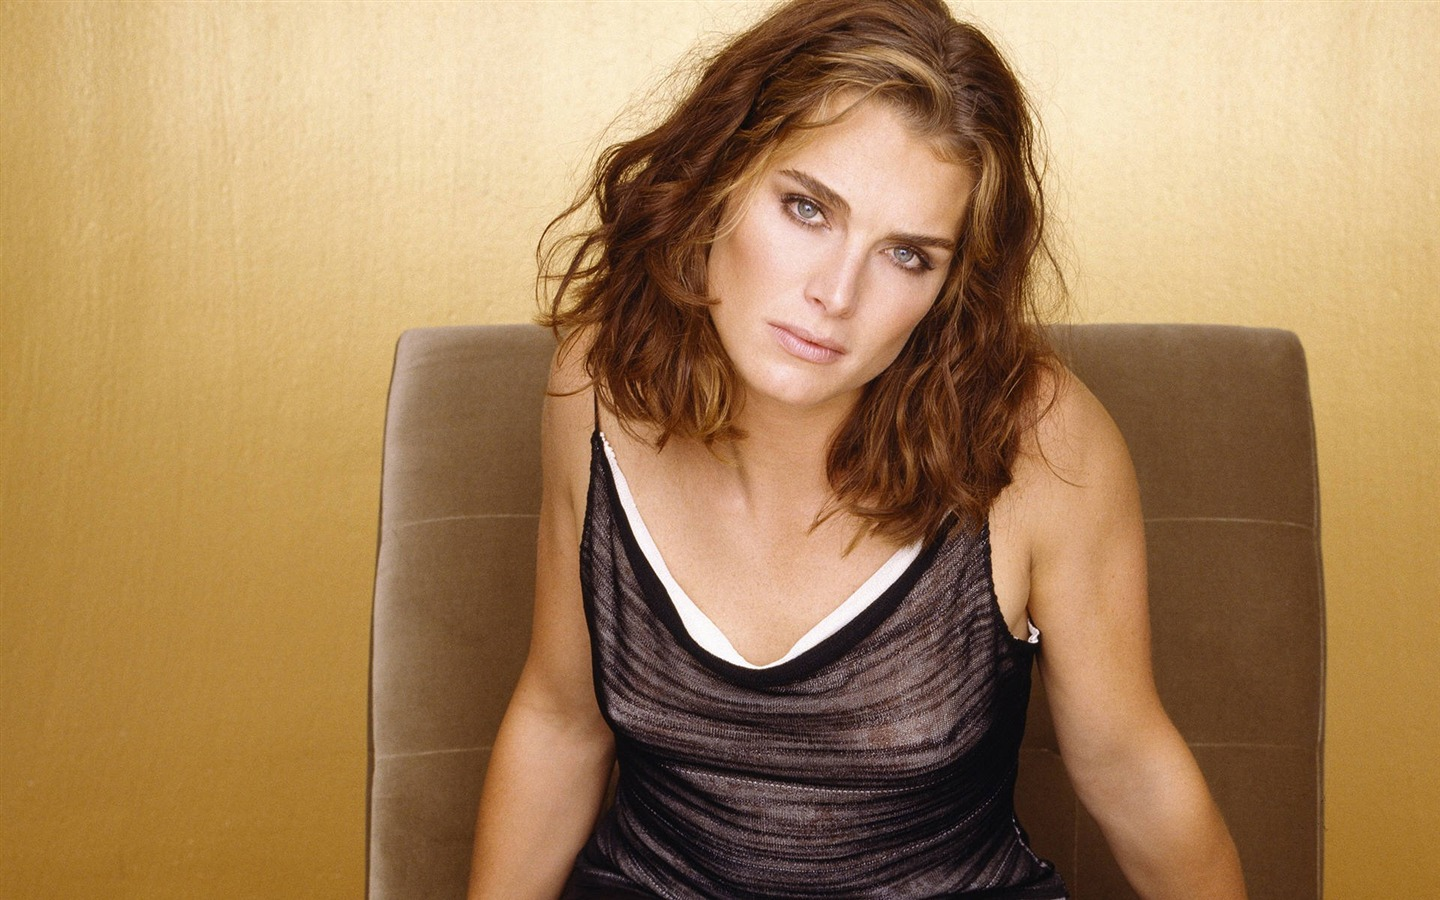 Brooke Shields #024 - 1440x900 Wallpapers Pictures Photos Images